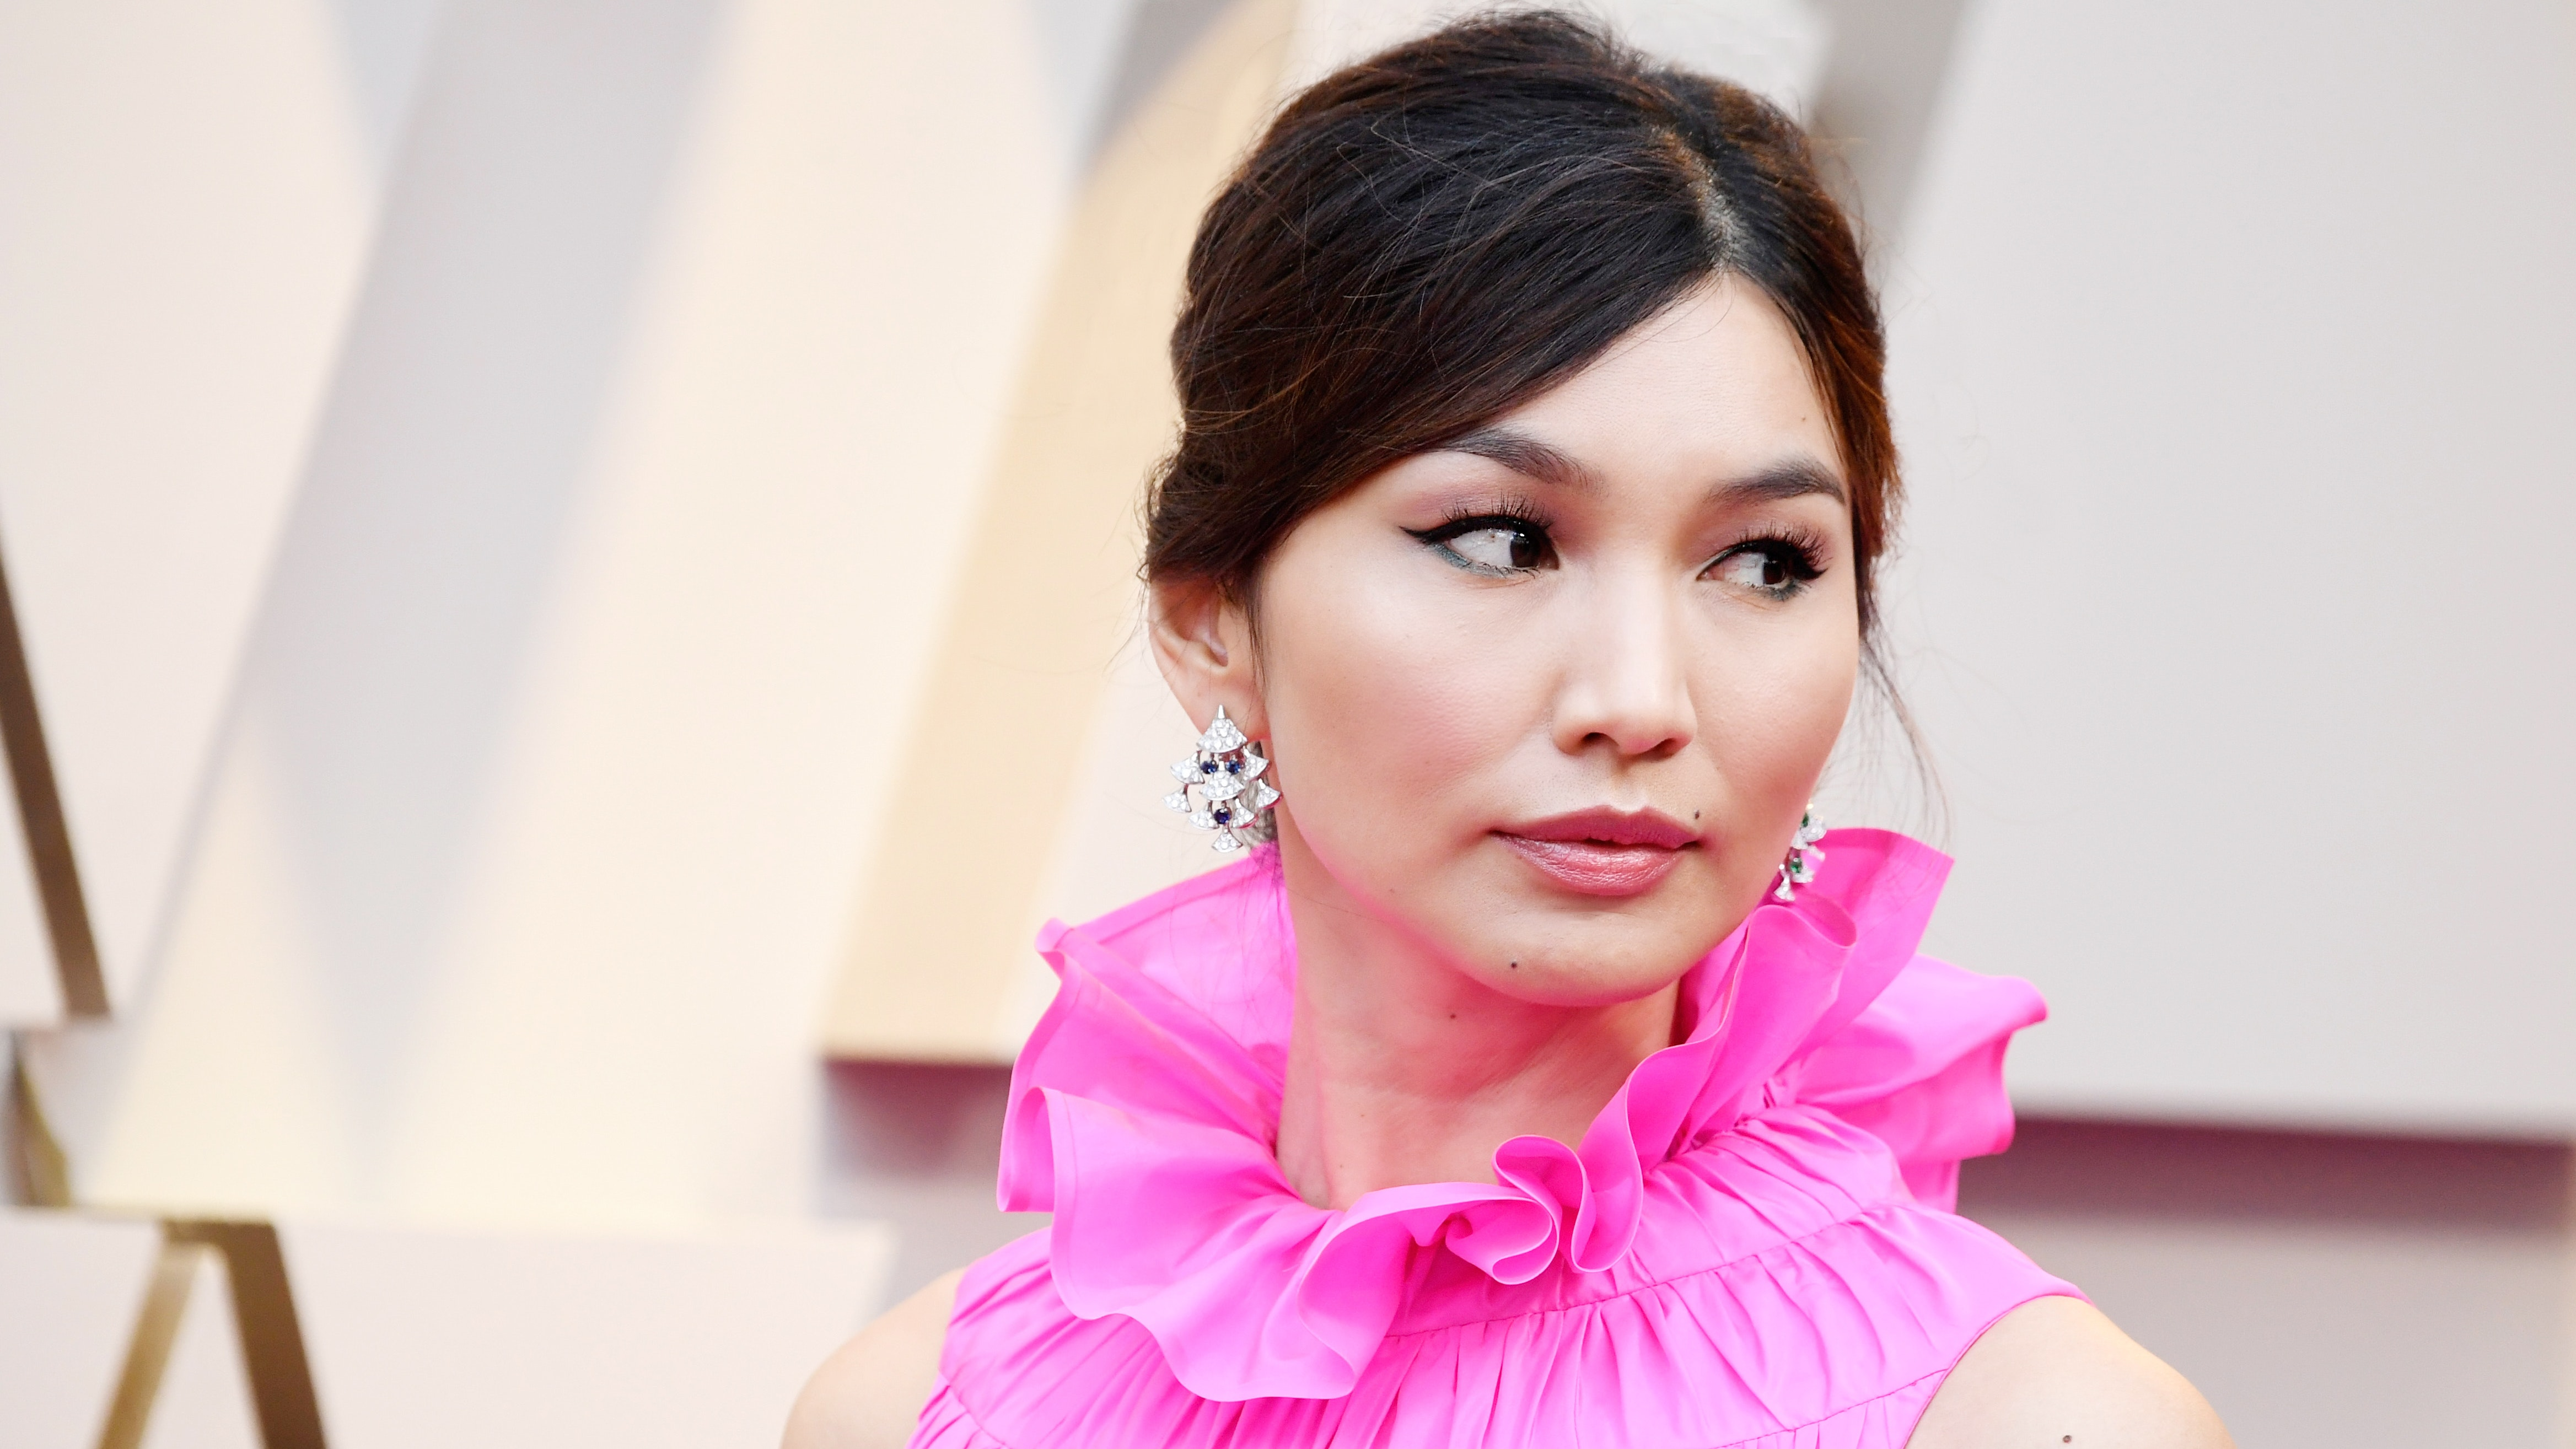 Gemma Chan walks the red carpet in a pink dress.